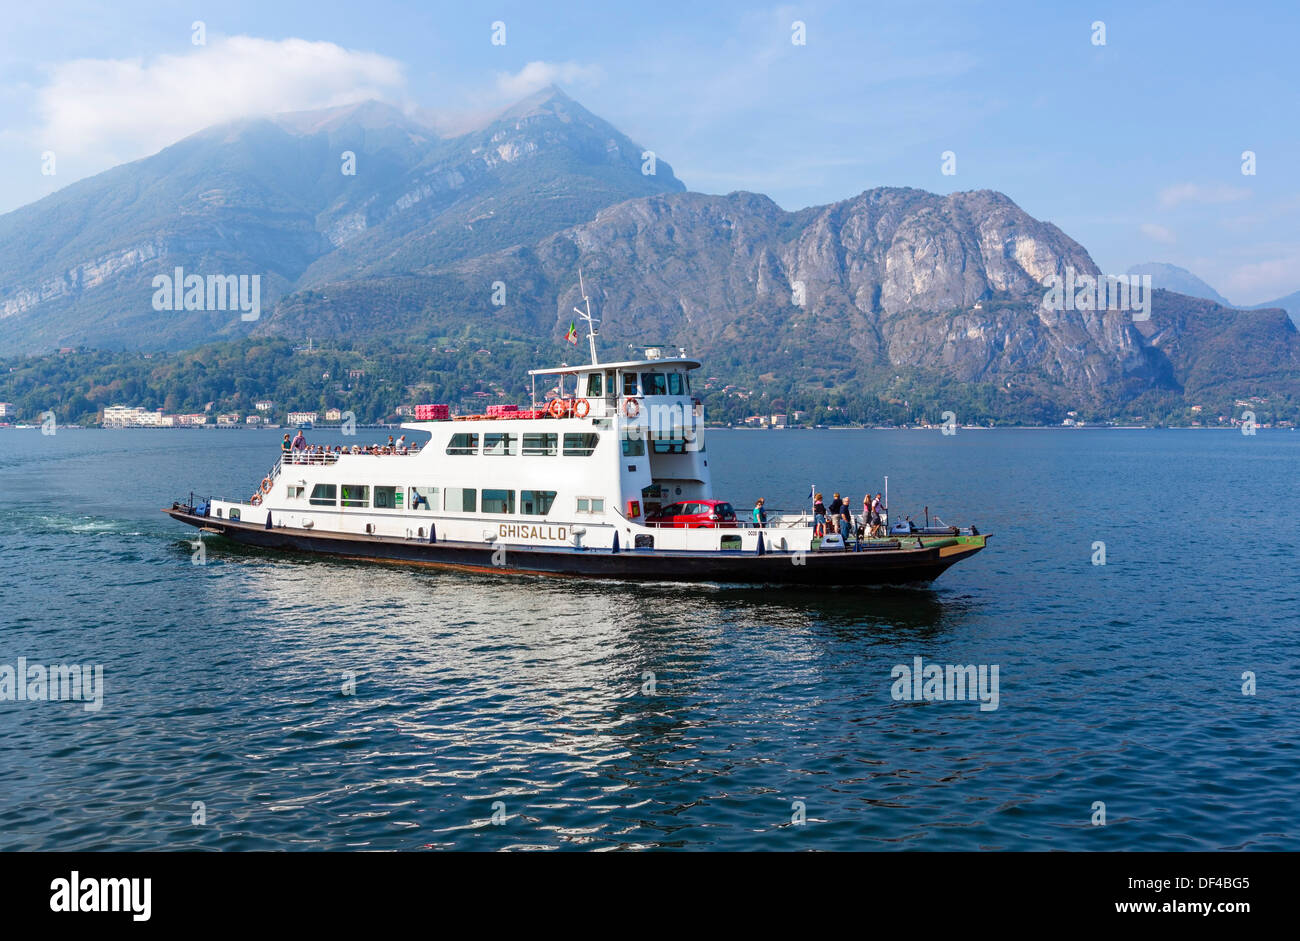 Car ferry approaching Bellagio, Lake Como, Lombardy, Italy - Stock Image